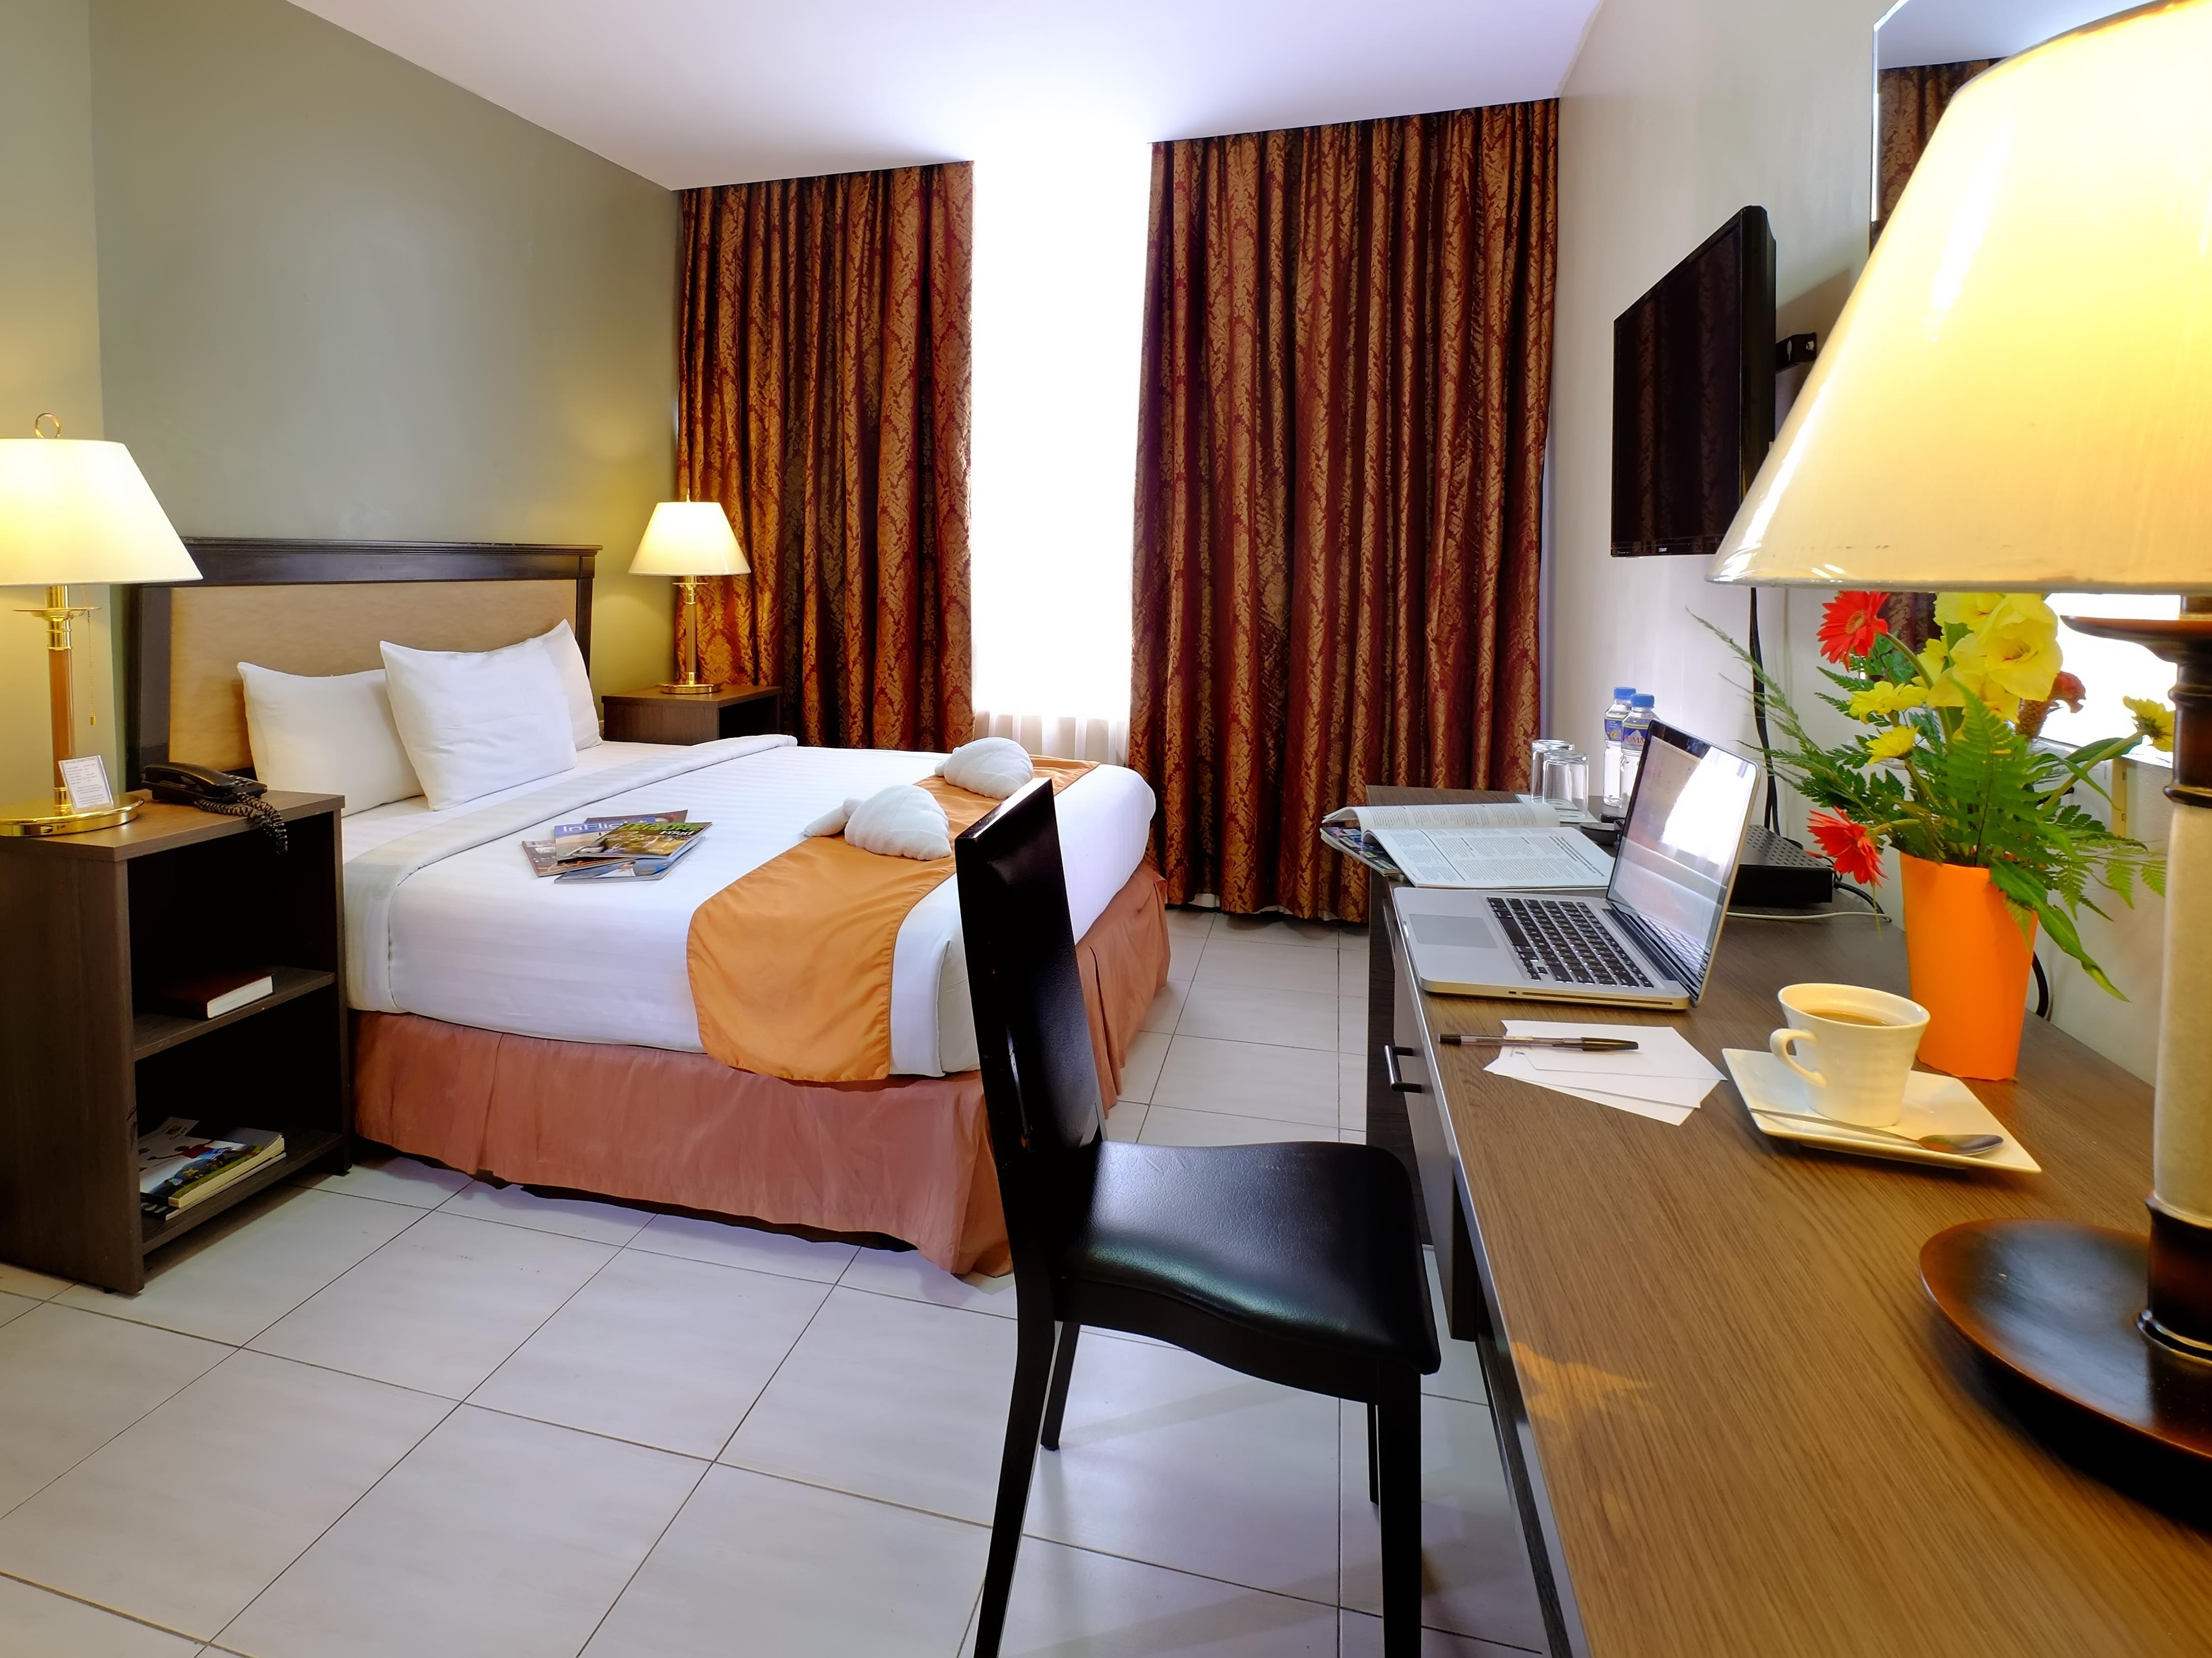 rooms division hotel operation philippines Trends in hotel/rooms division hotel organization hotel and rooms division operation - front office reservations housekeeping concierge guest services.